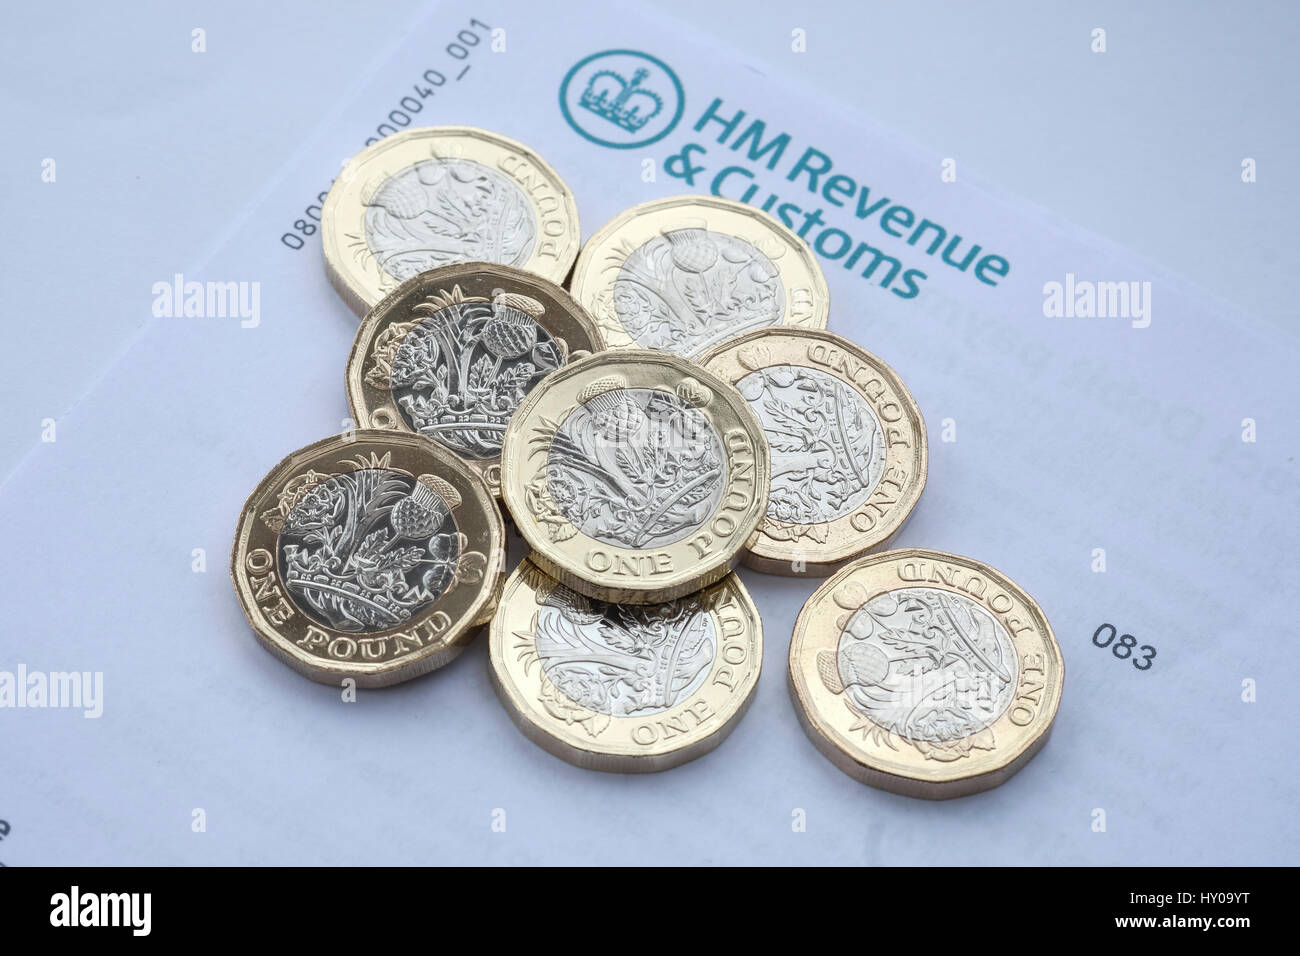 Tax letter with new pound coins - Stock Image